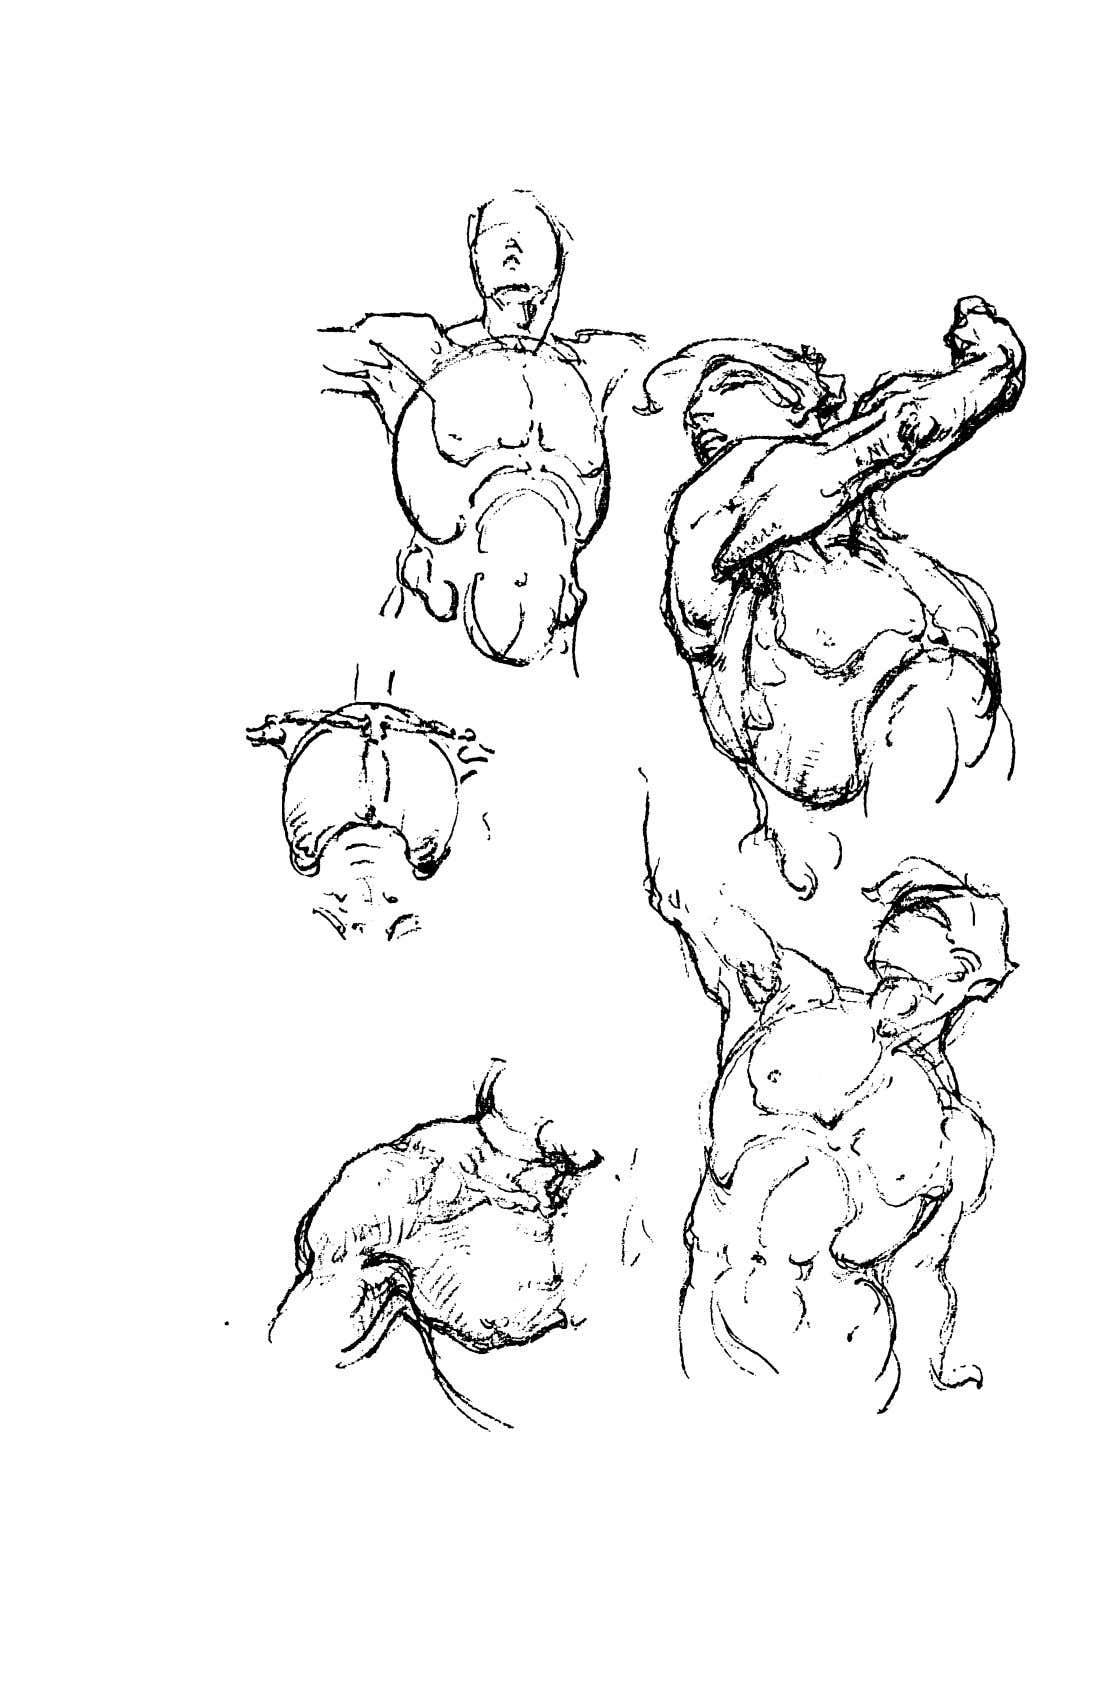 Constructive Anatomy in 2020 | Anatomy, Drawing lessons ...